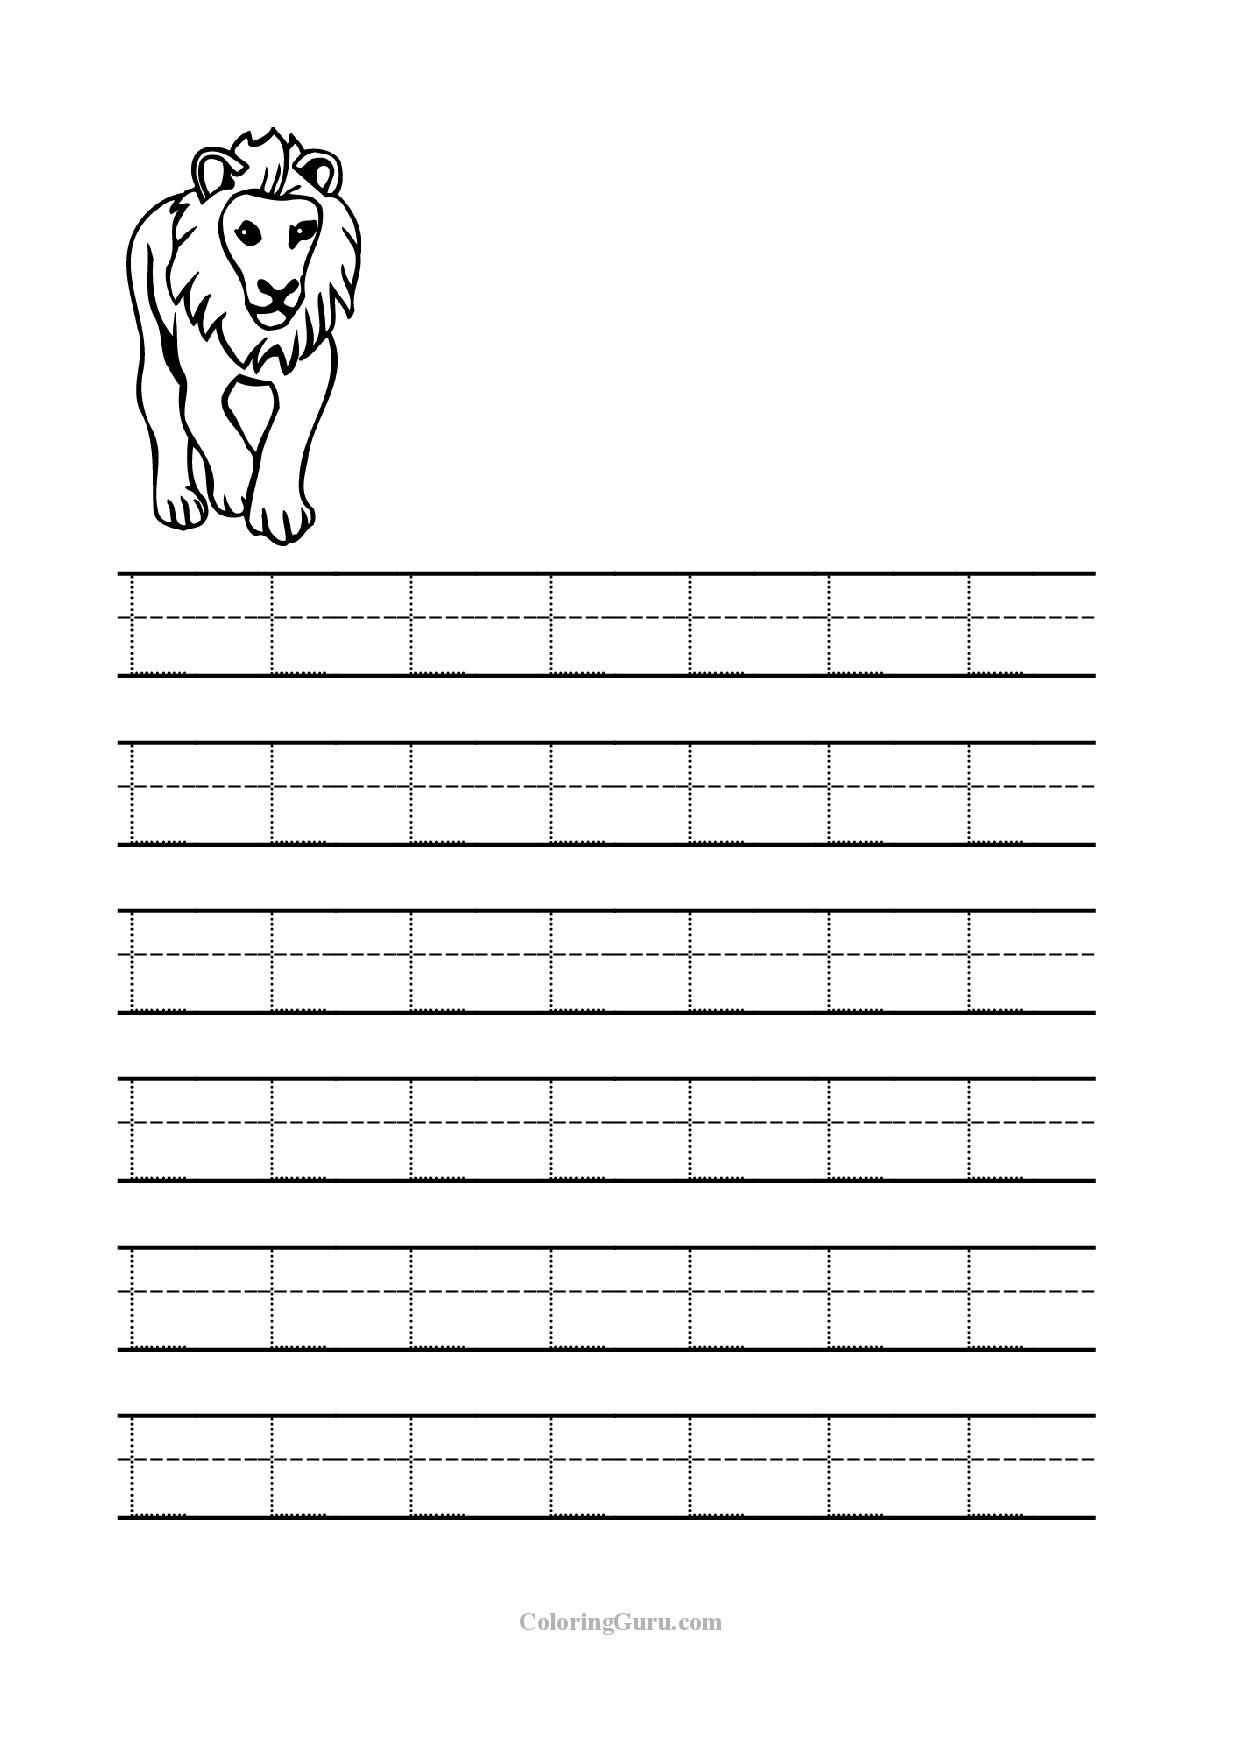 Free Printable Tracing Letter L Worksheets For Preschool intended for Letter L Worksheets Tracing